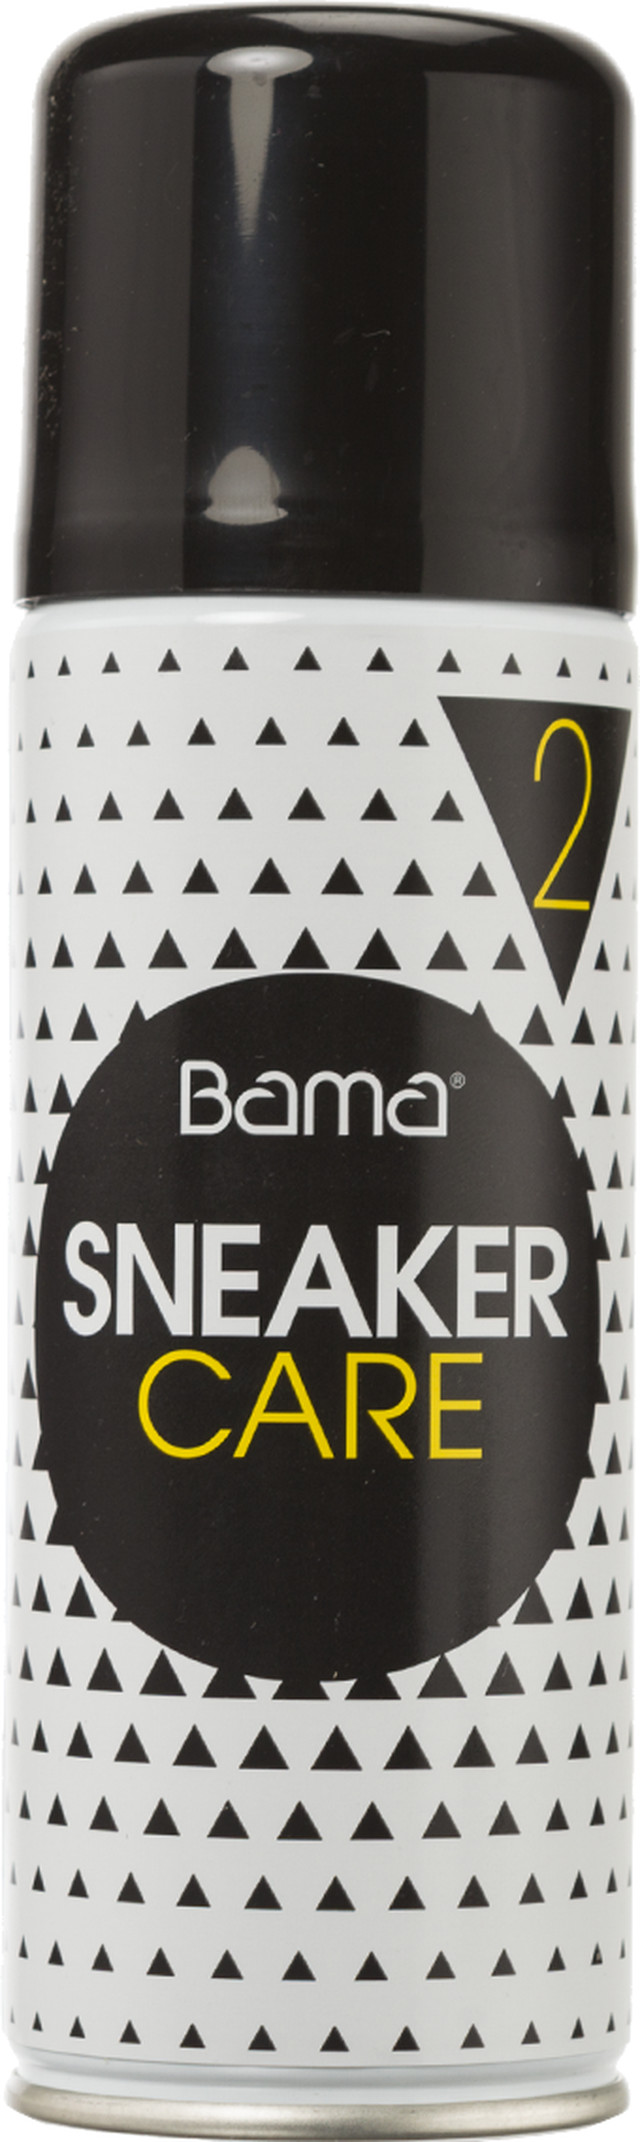 Bama Sneaker Care 200ml 34A77F000C001